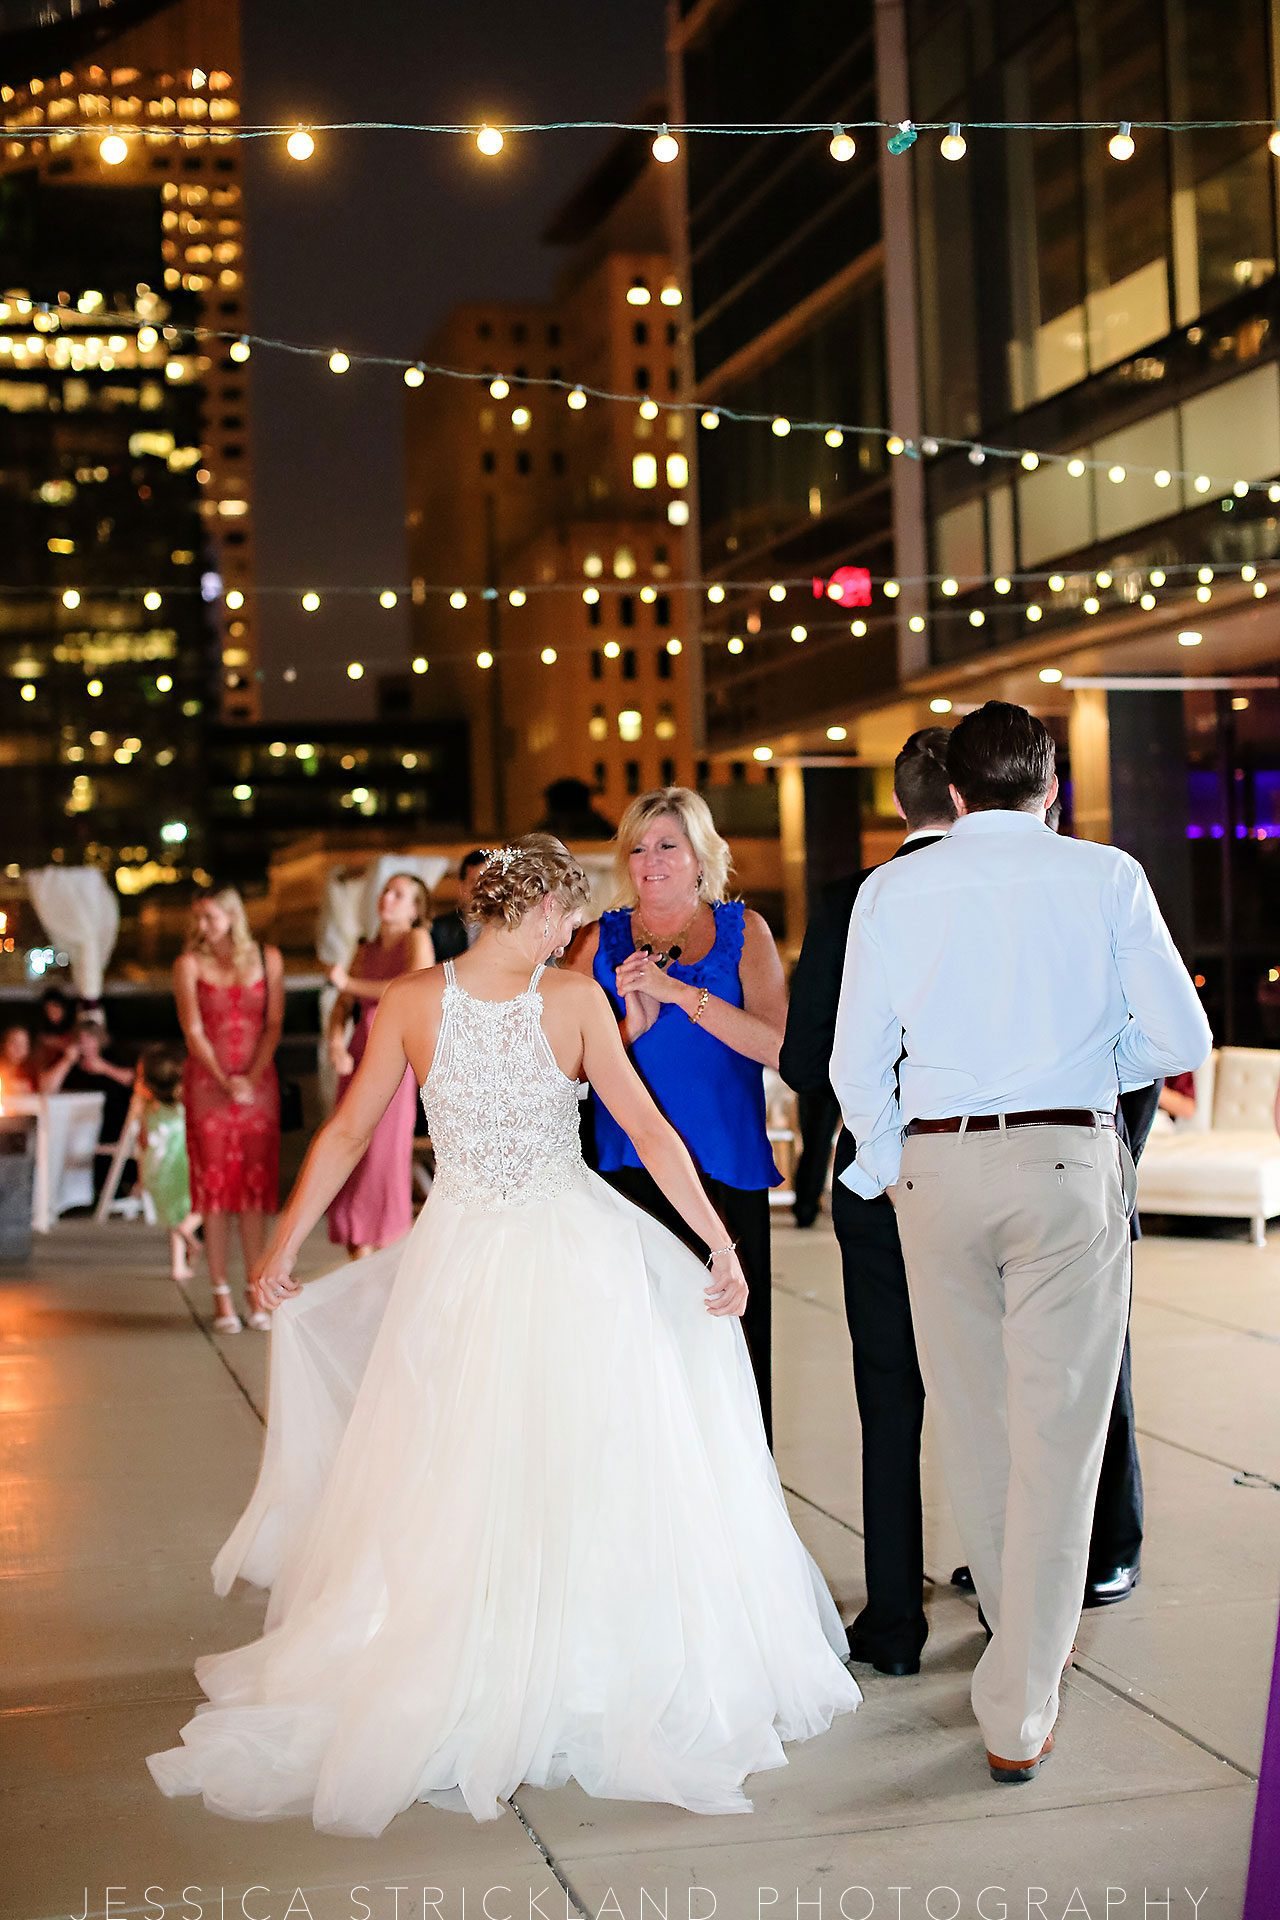 Serra Alex Regions Tower Indianapolis Wedding 345 watermarked